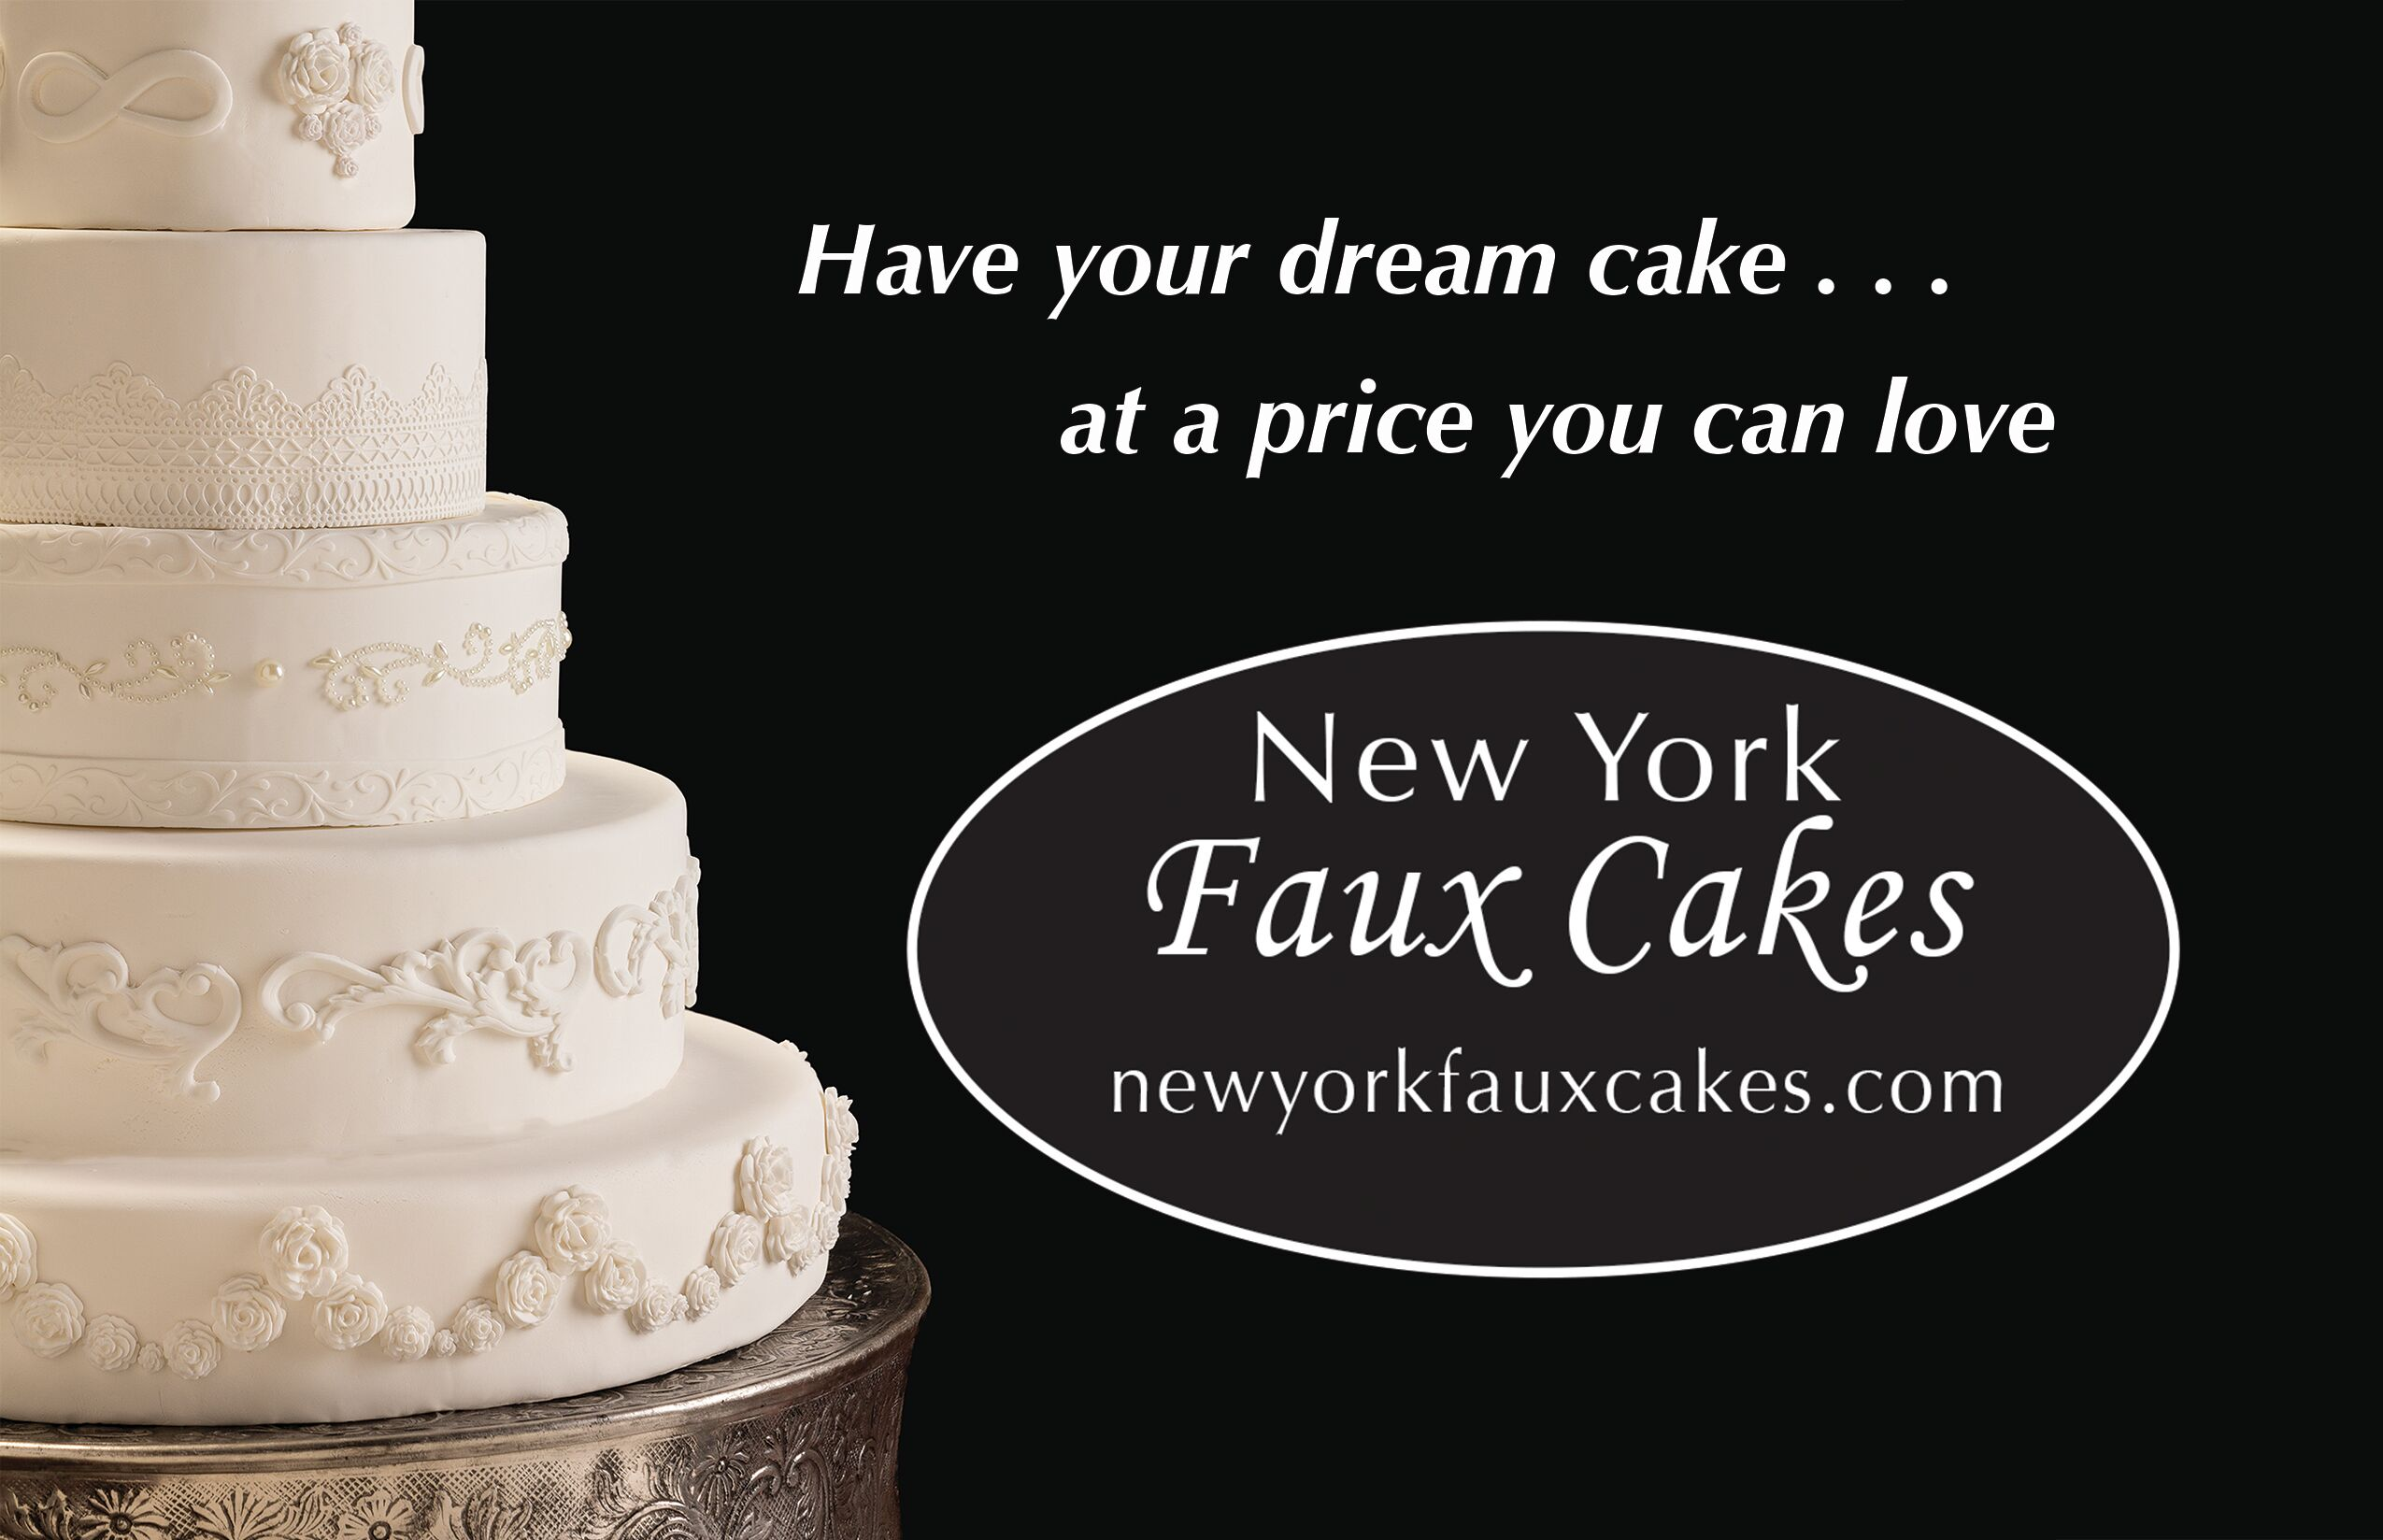 New York Faux Cakes